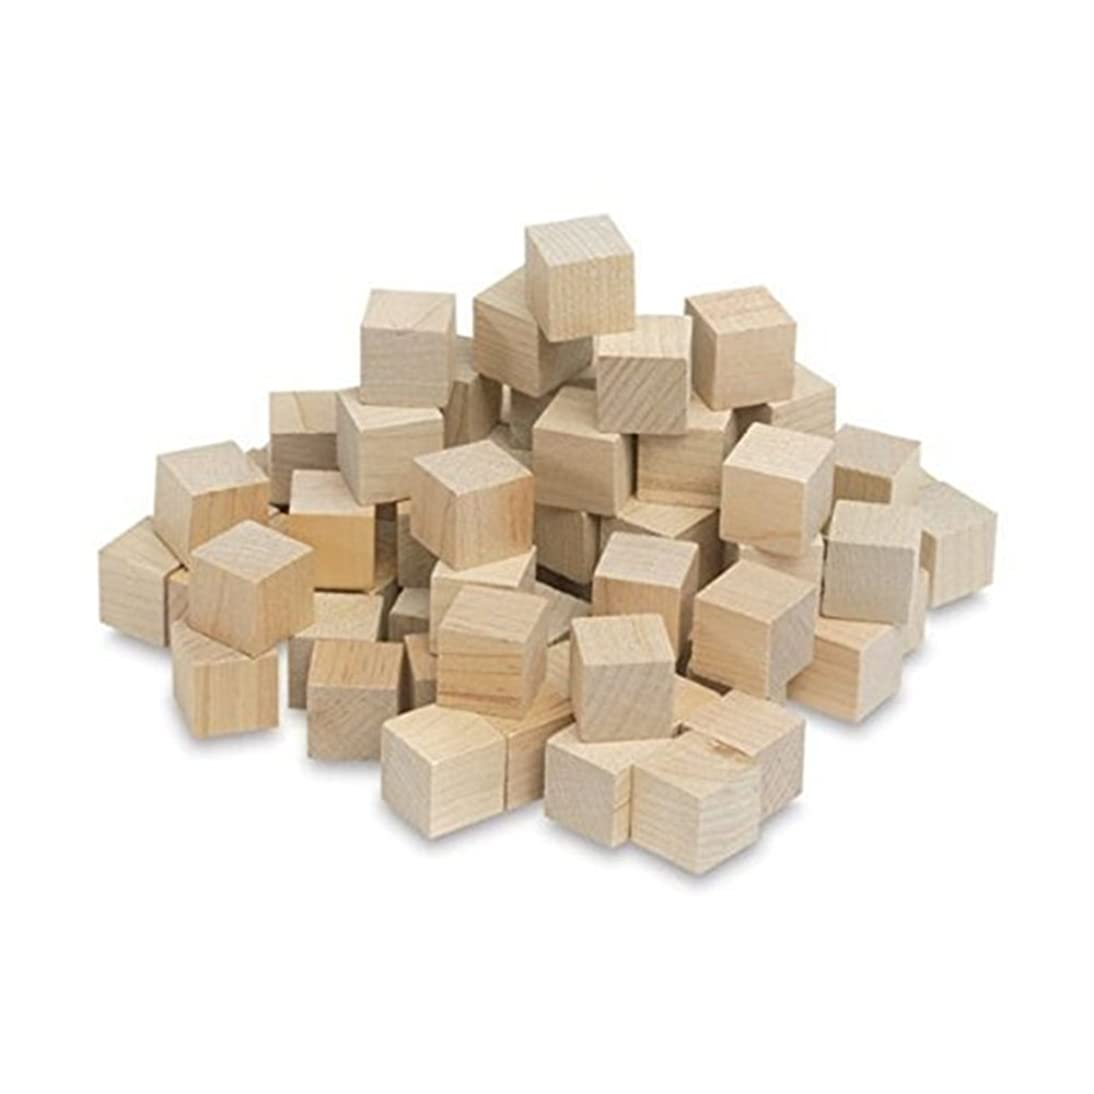 """1/2 Inch Wood Cubes, Natural Unfinished Craft Wood Blocks (1/2"""") - by Craftparts Direct - Bag of 100"""